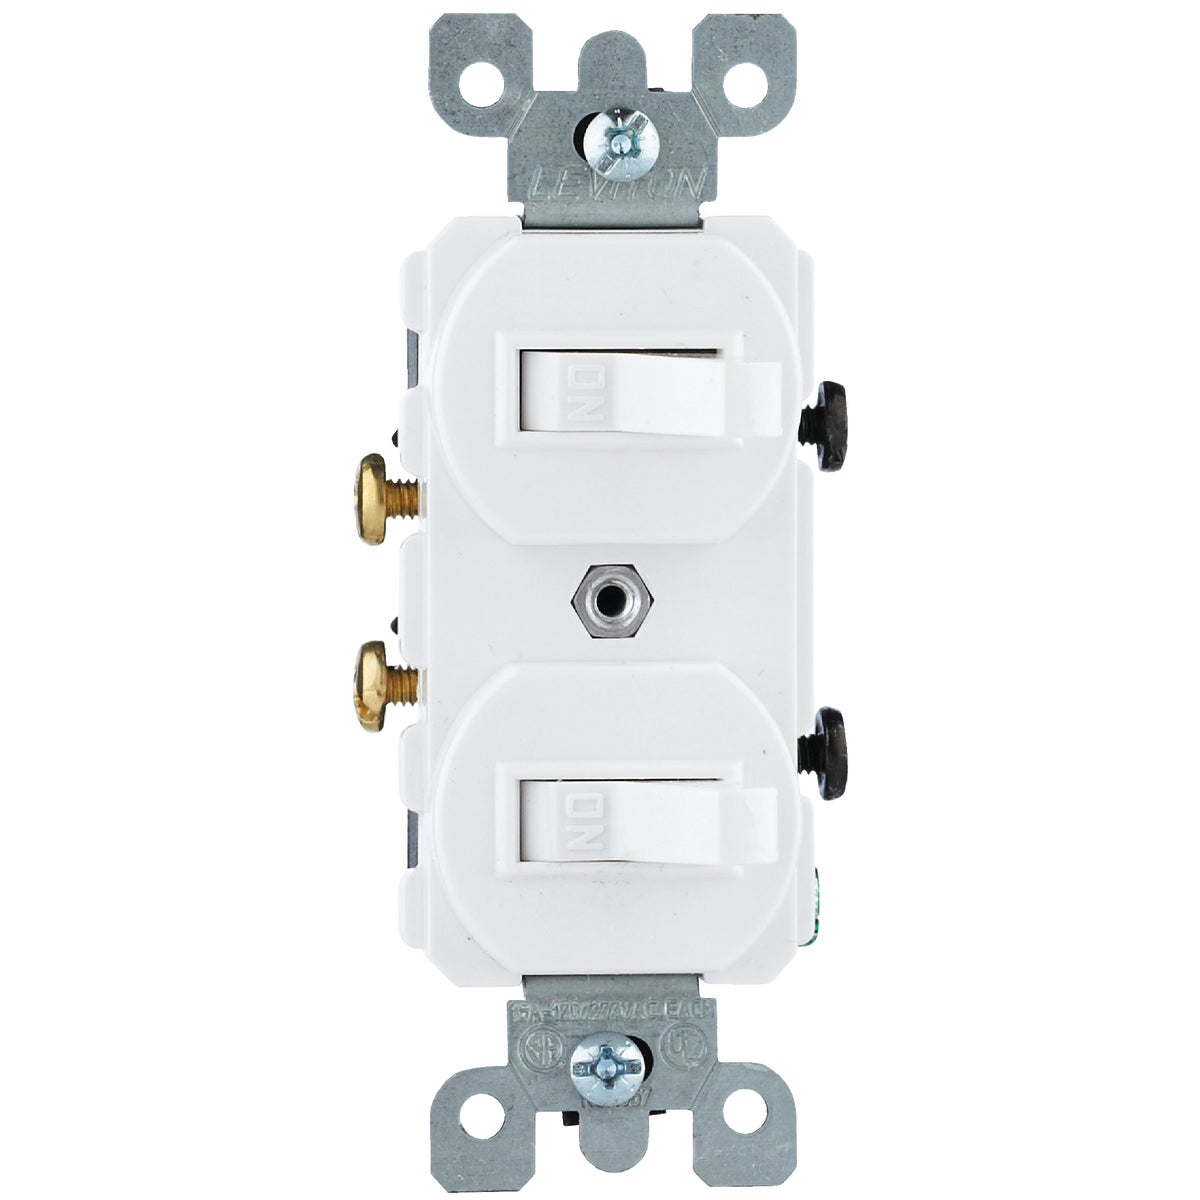 WHT SWITCH - 8785224W by Leviton Mfg Co